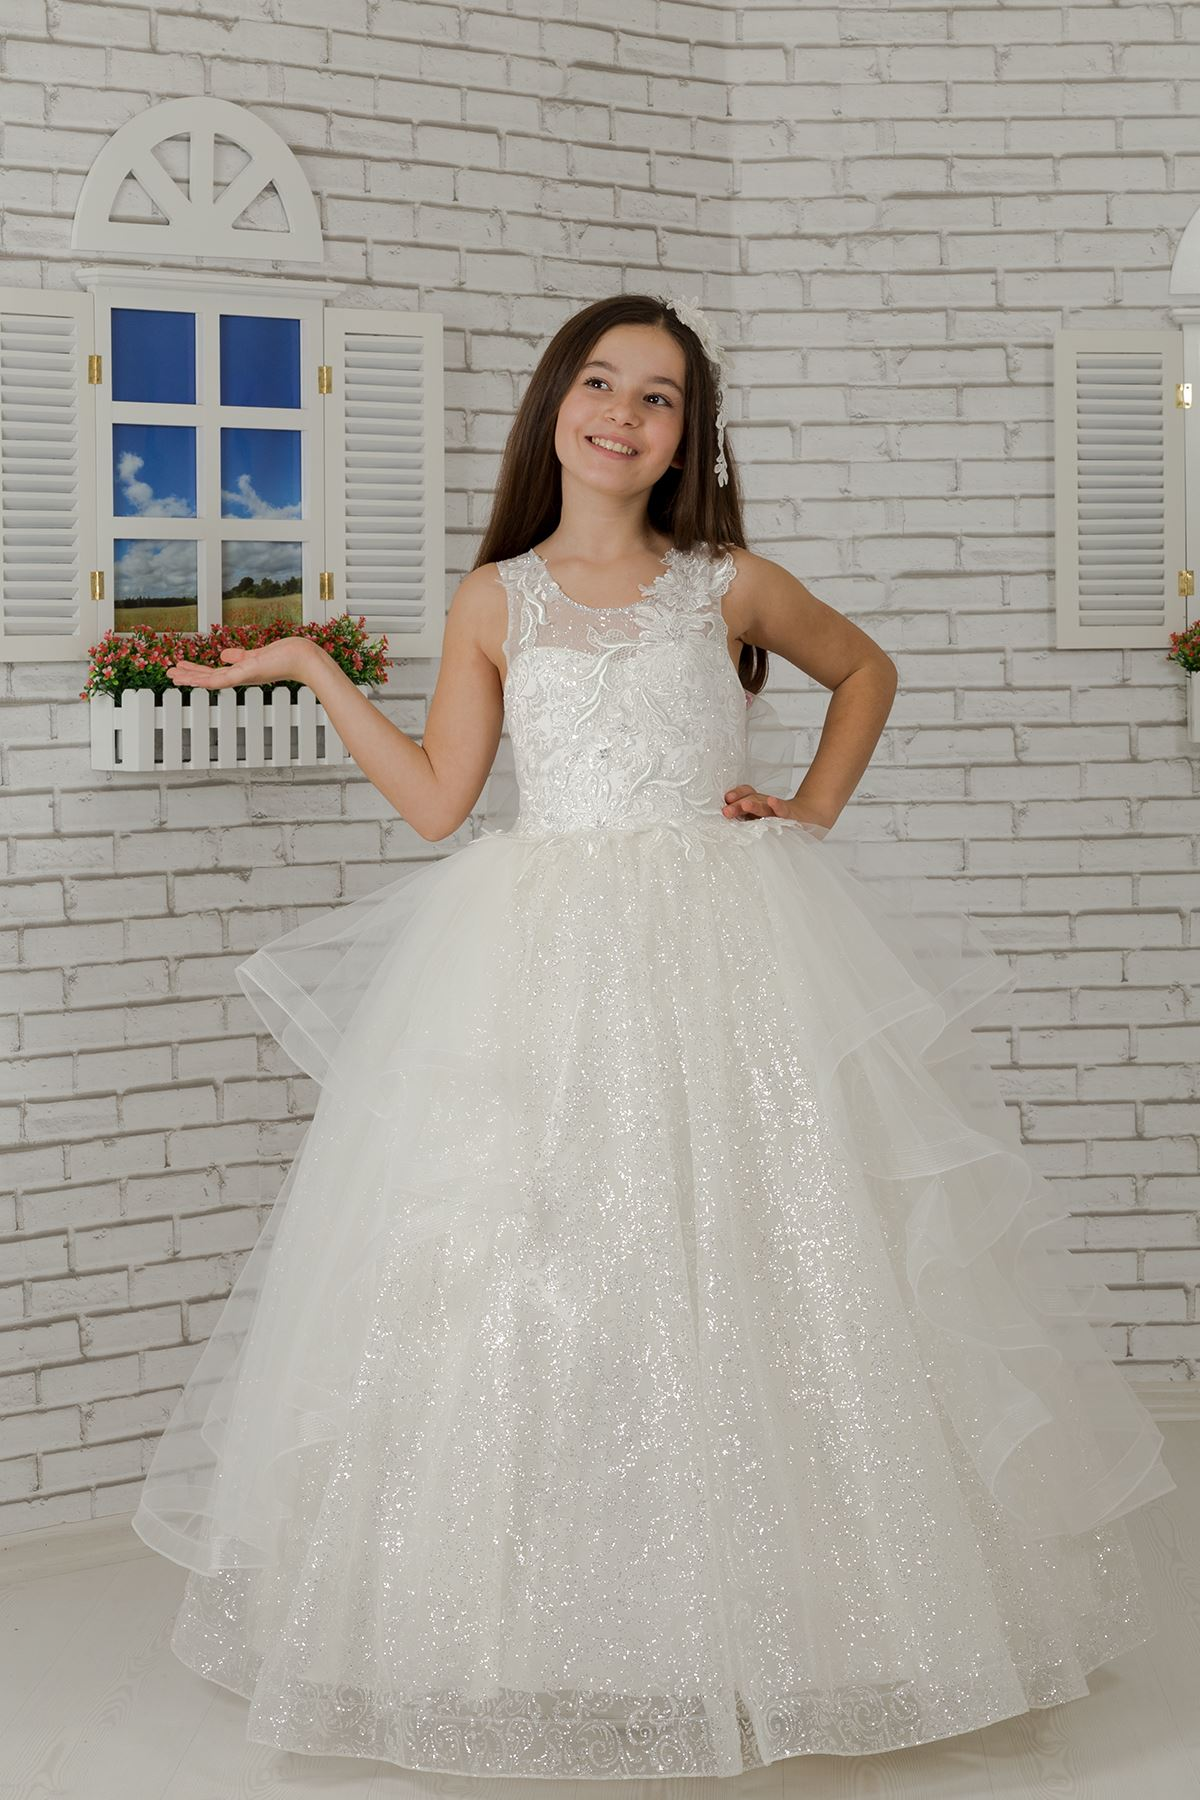 Body sconce, special silvery tulle, skirt detailed fluffy girl children evening dress 624 cream